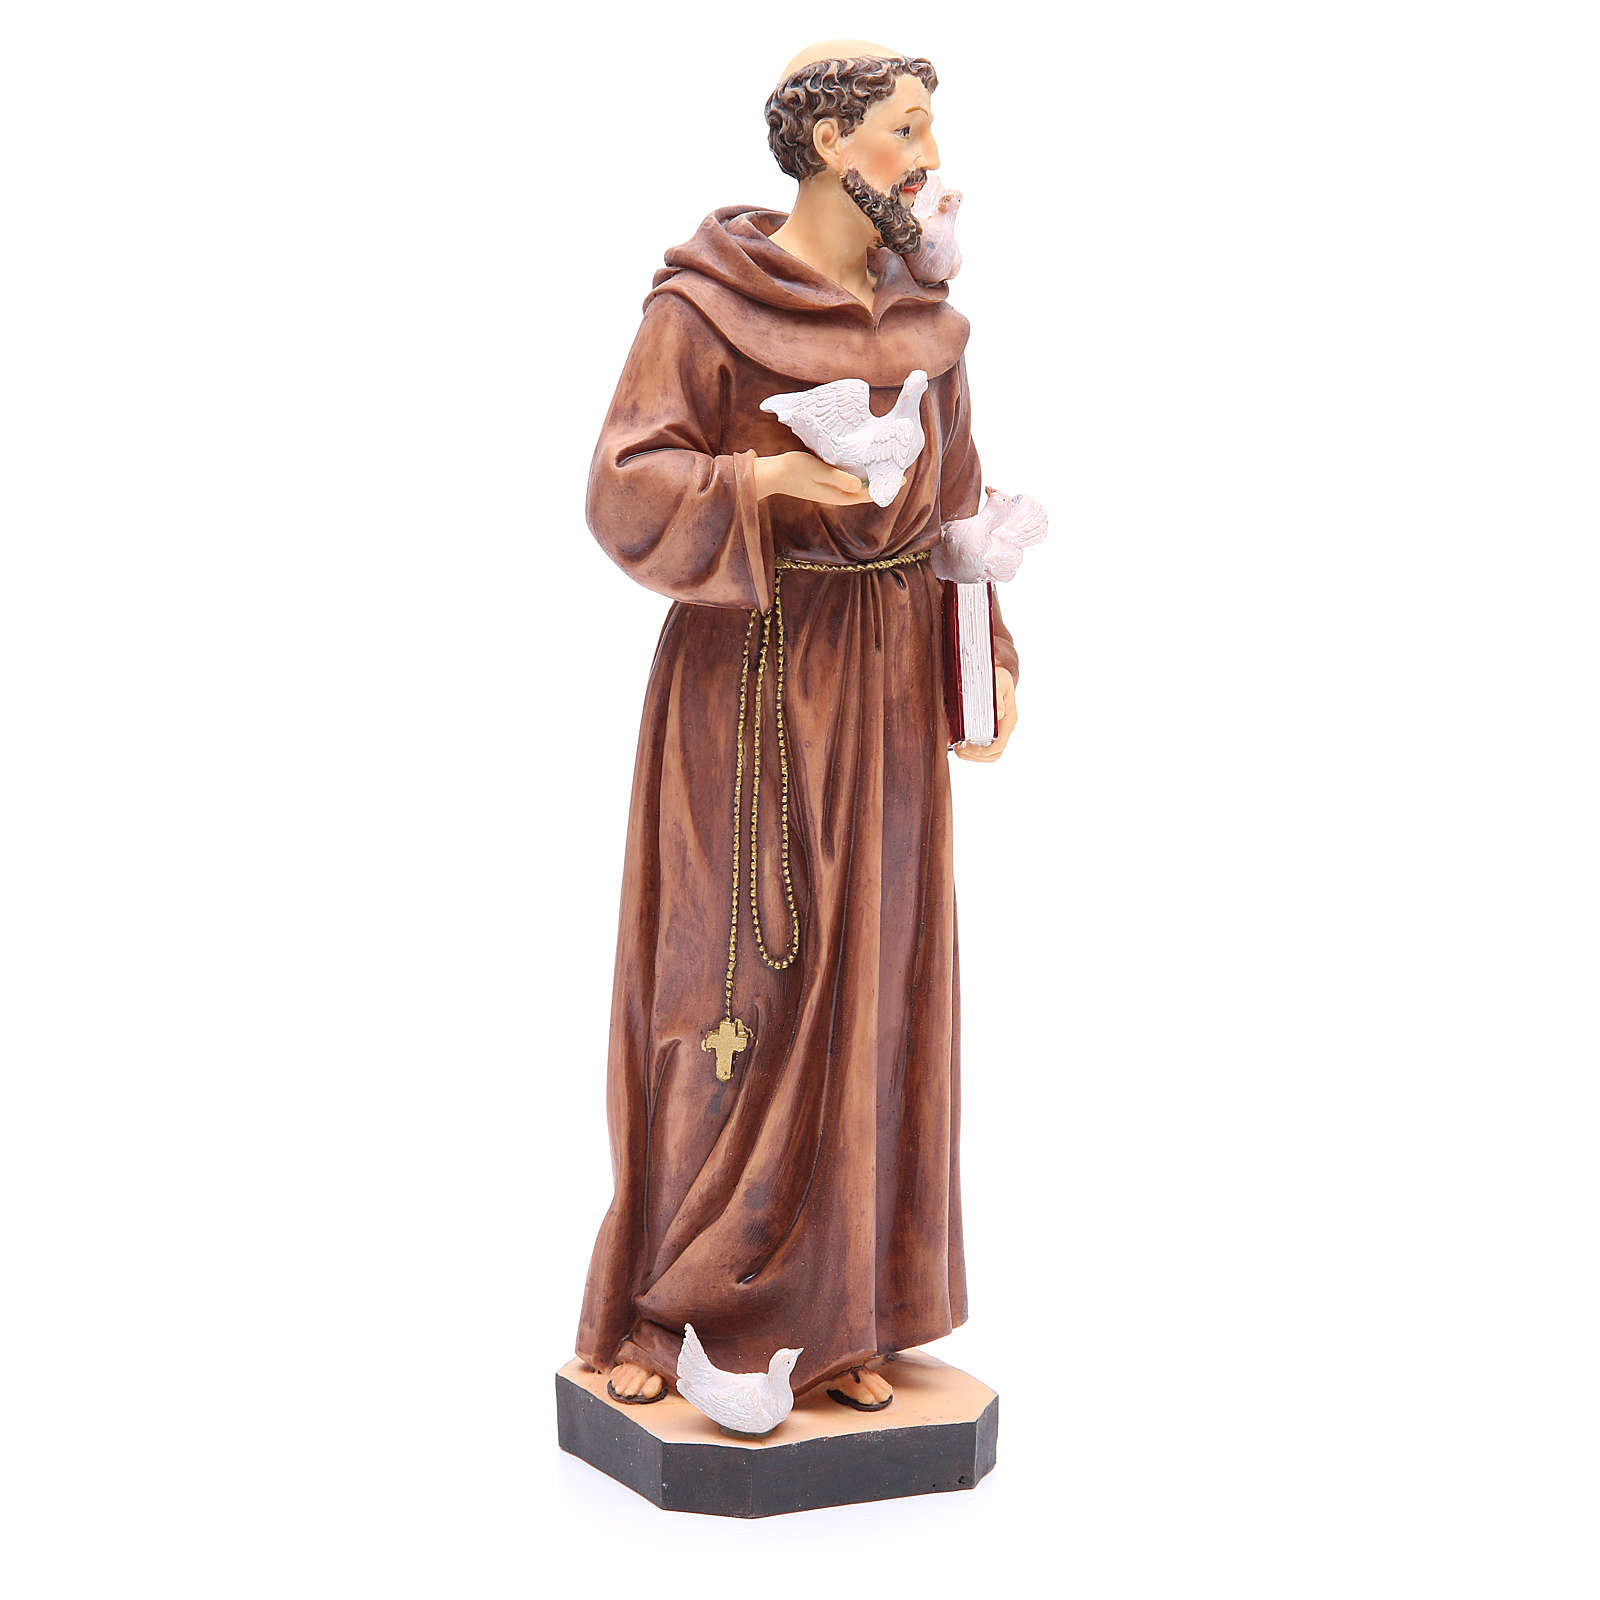 Saint Francis statue 40 cm in coloured resin with base 4